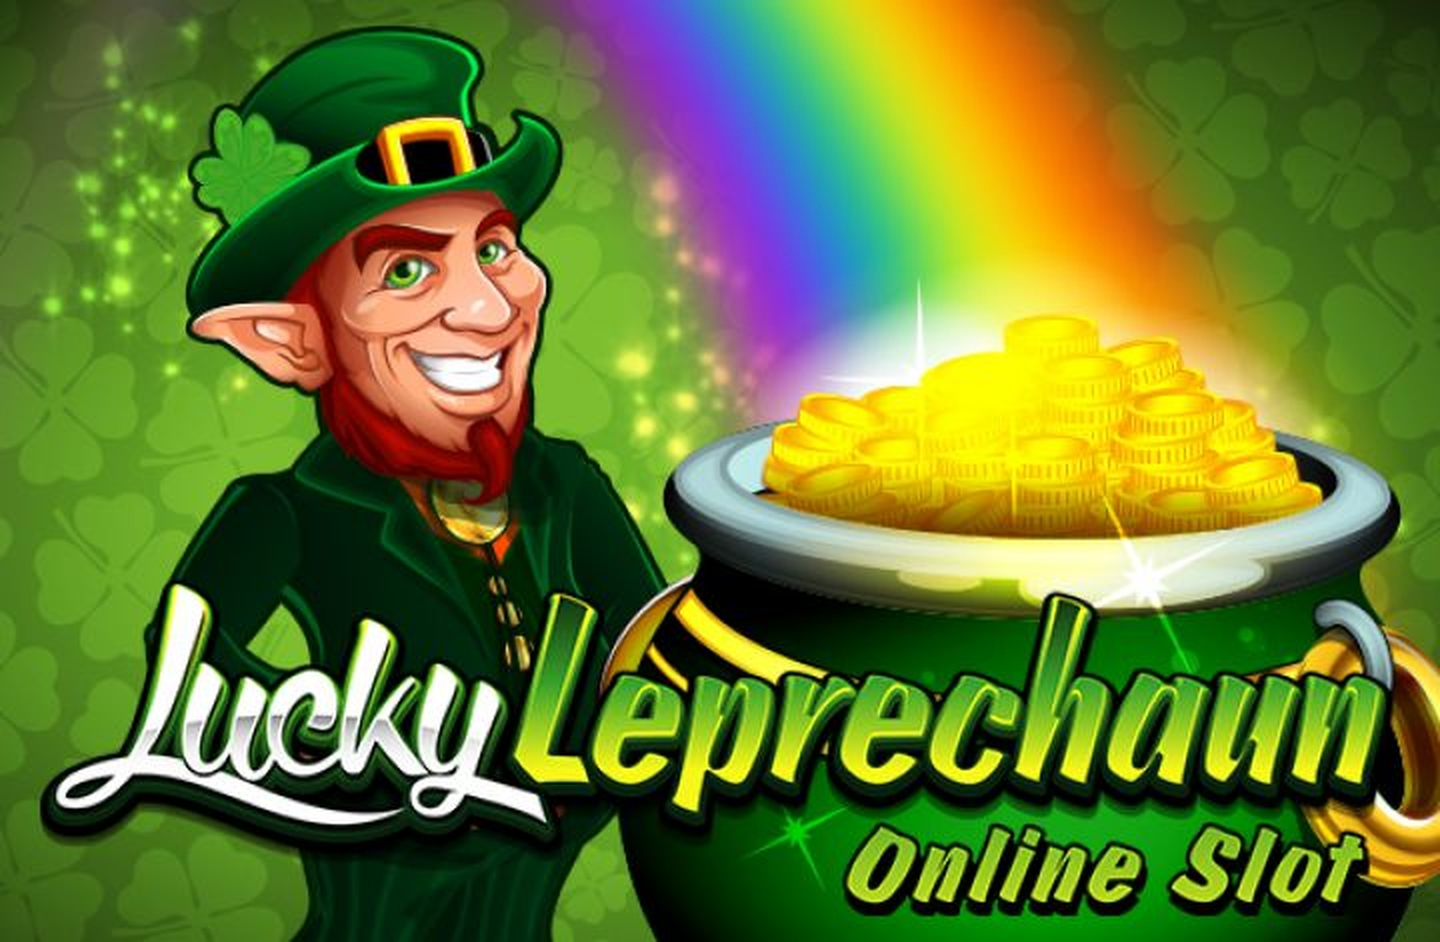 The Lucky Leprechaun (Microgaming) Online Slot Demo Game by Microgaming